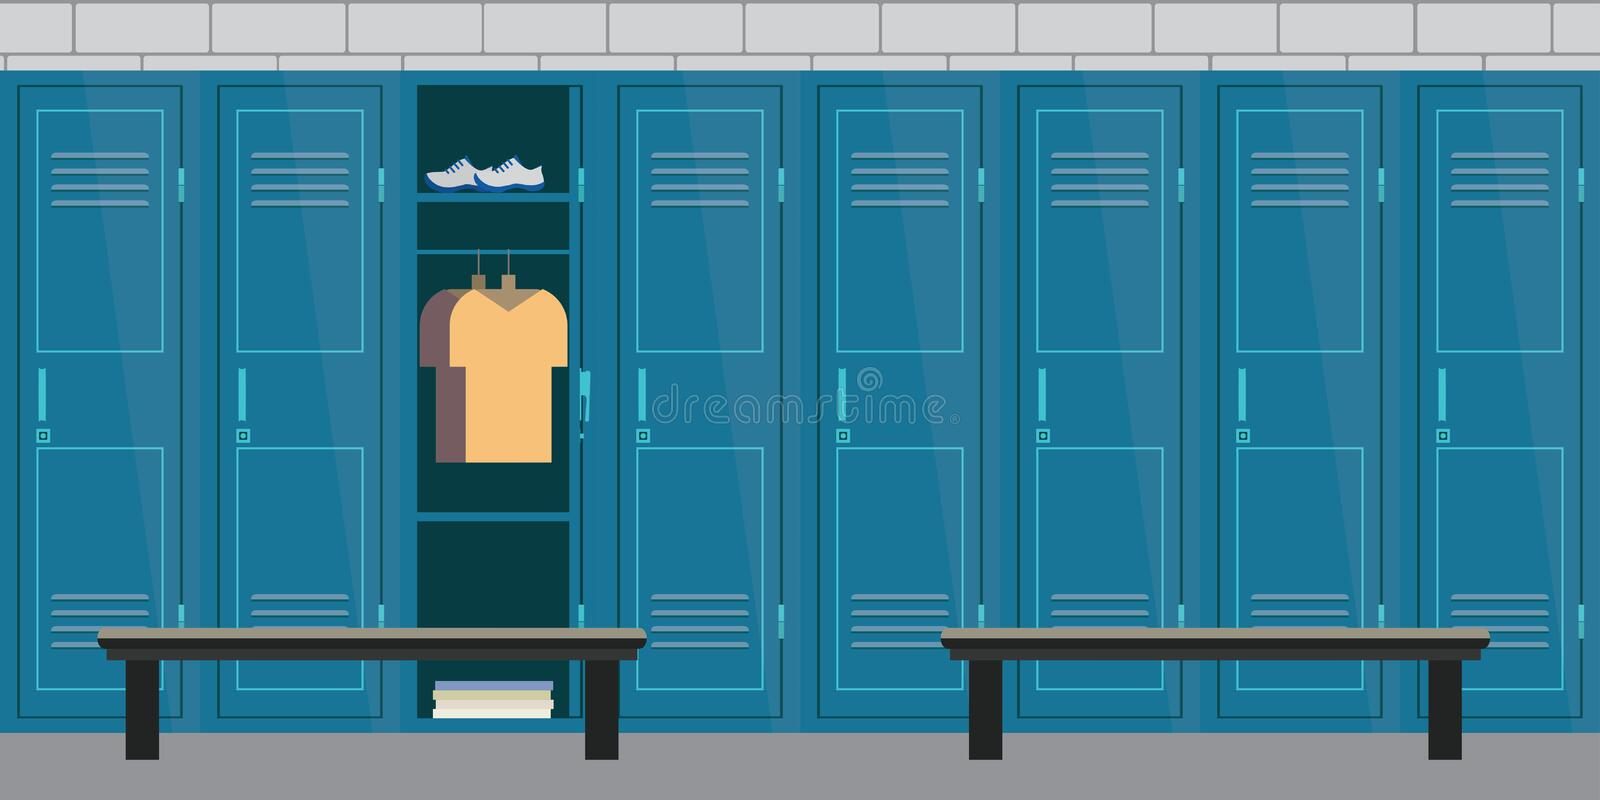 Dressing place a fitness club. Interior of a gym locker room. Dressing place a fitness club.Lockers with open door. Flat vector illustration royalty free illustration